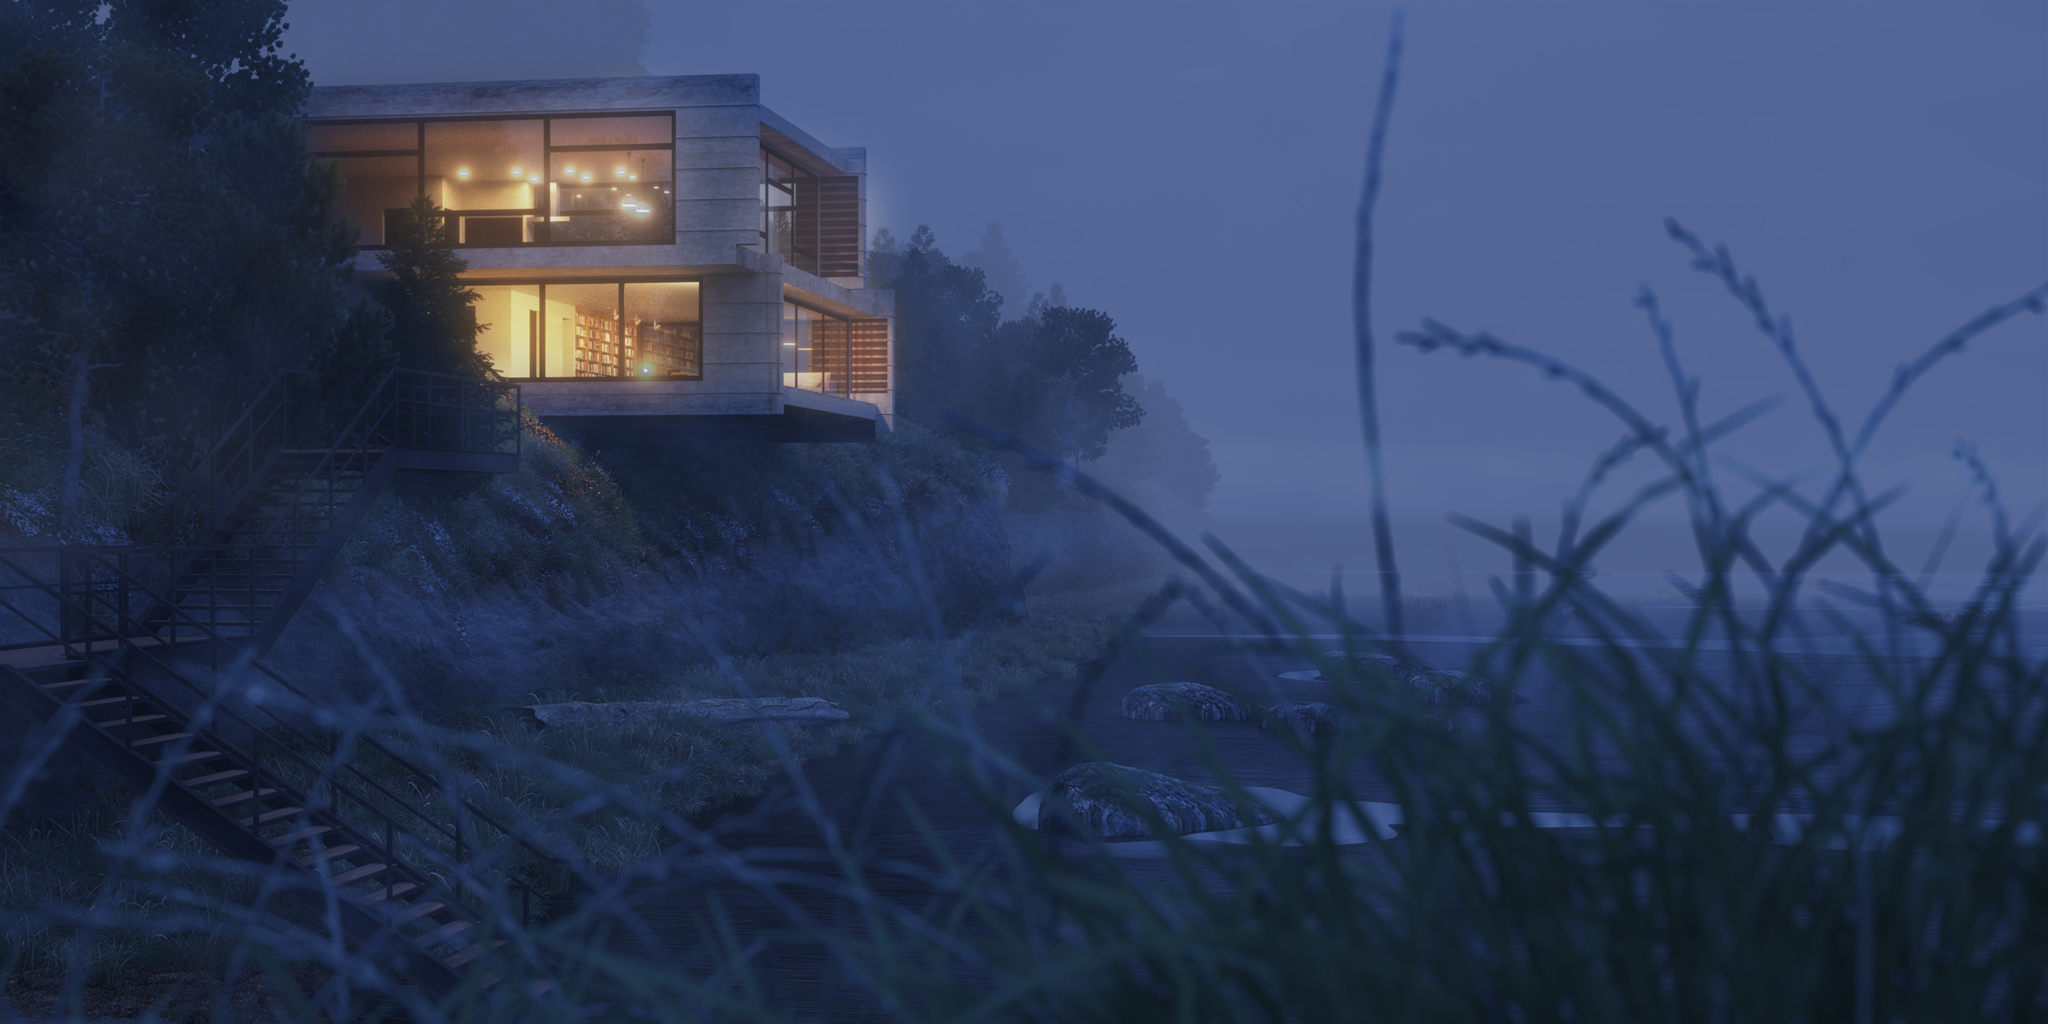 3d rendering of a Hypothetical home on the Oregon Coast